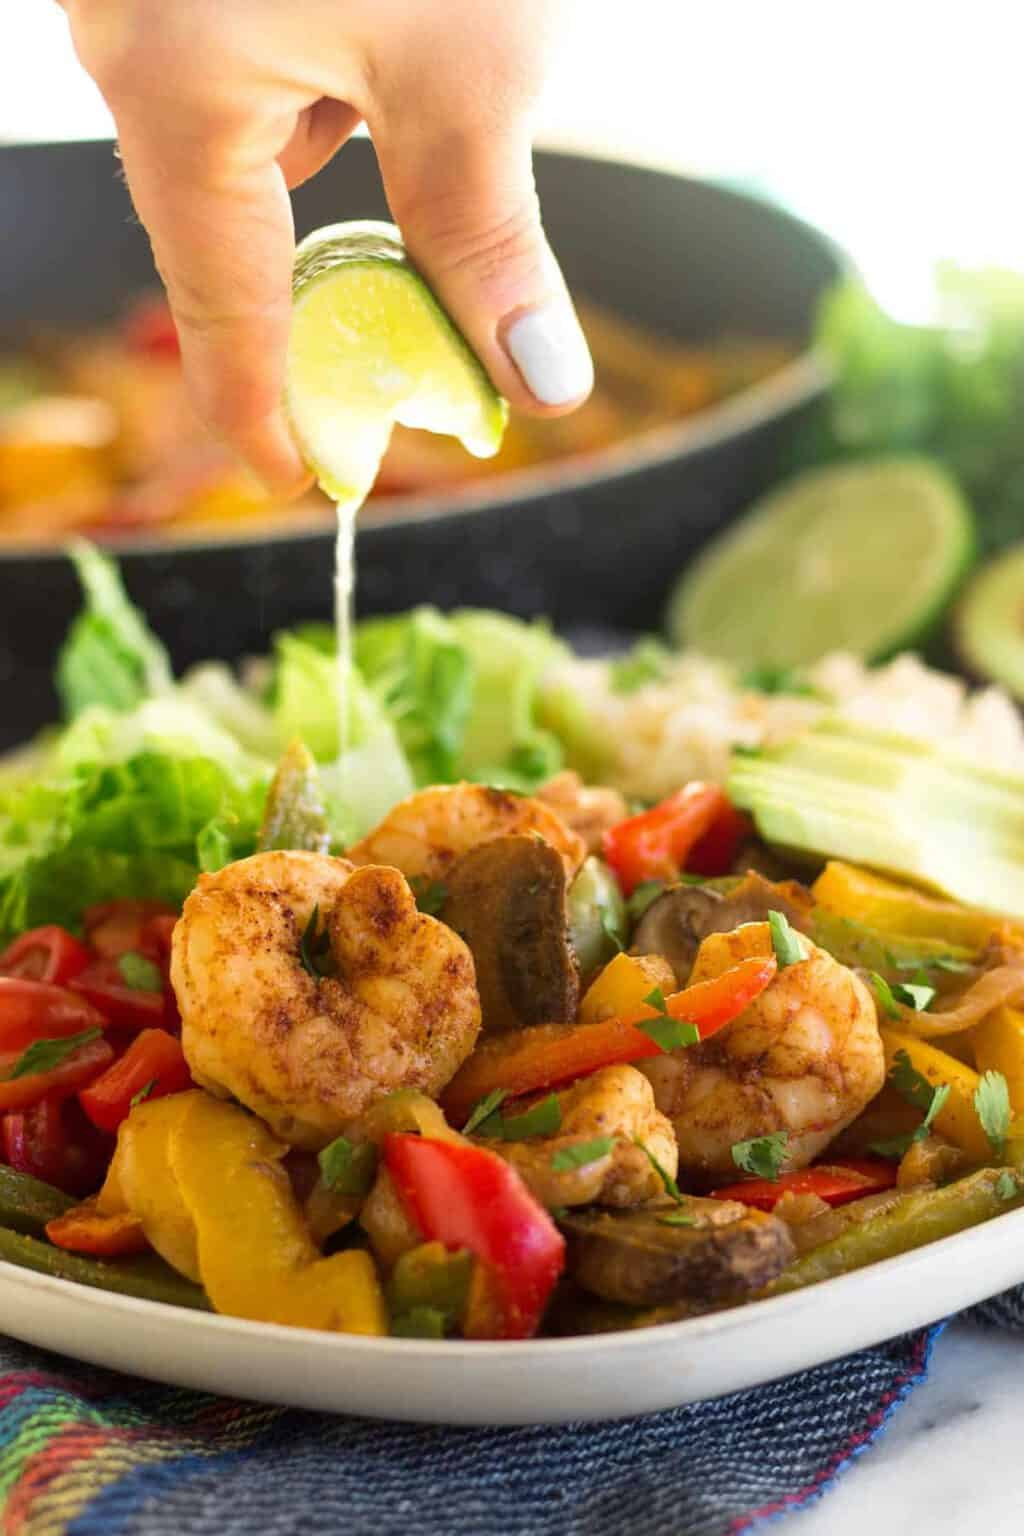 Shrimp fajitas on plate with hand squeezing lime over the top